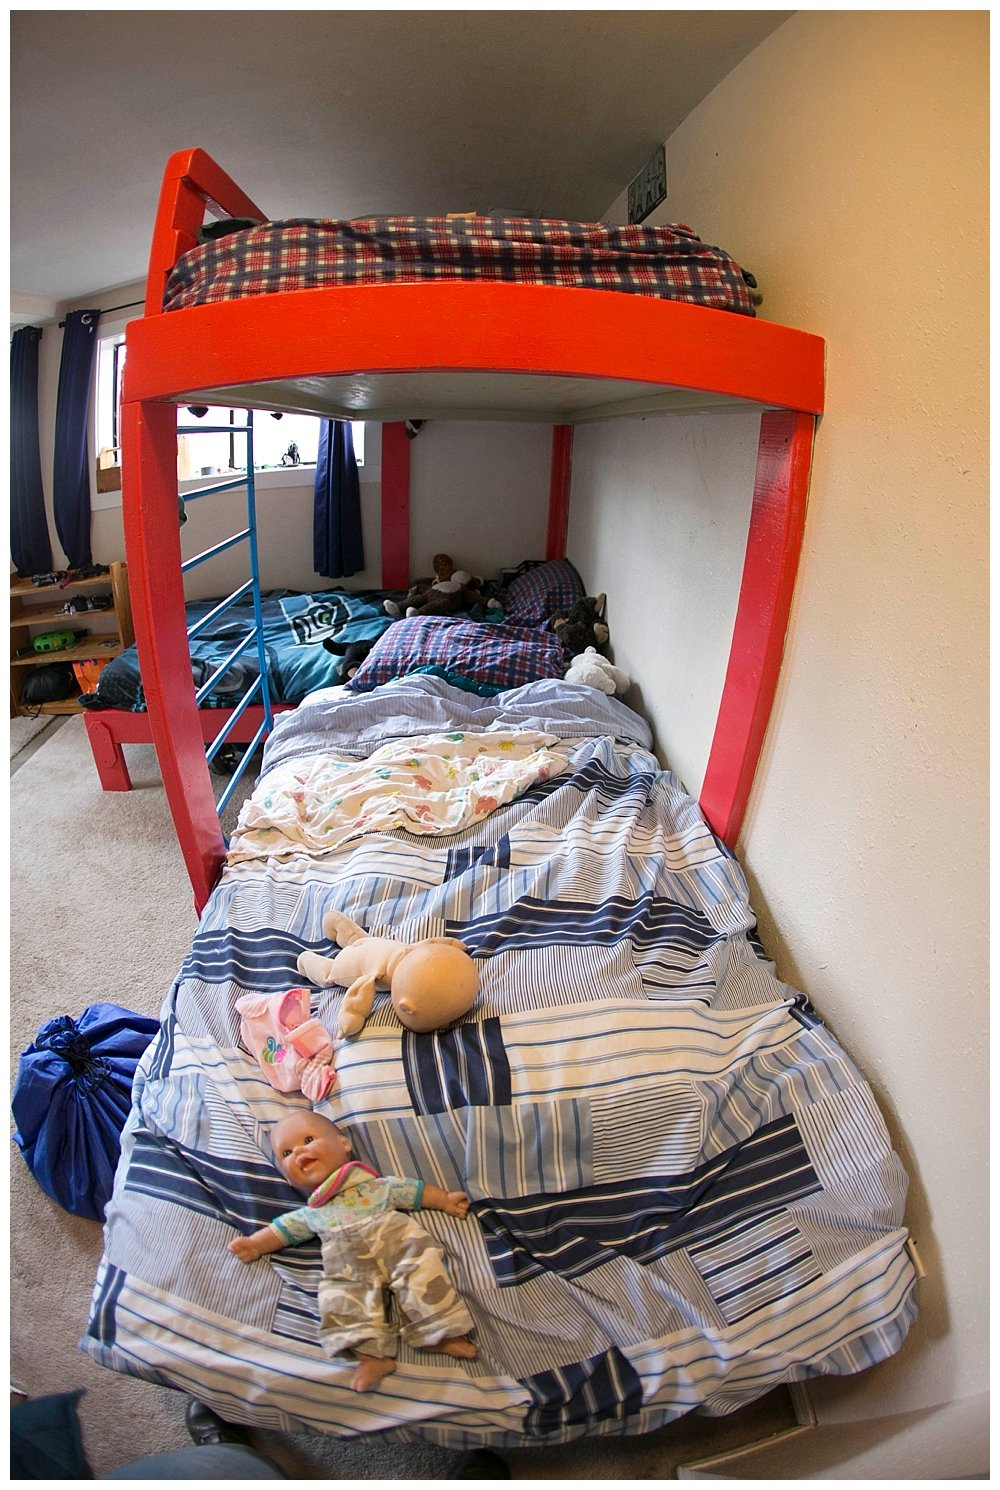 The very best triple bunk beds for large families.